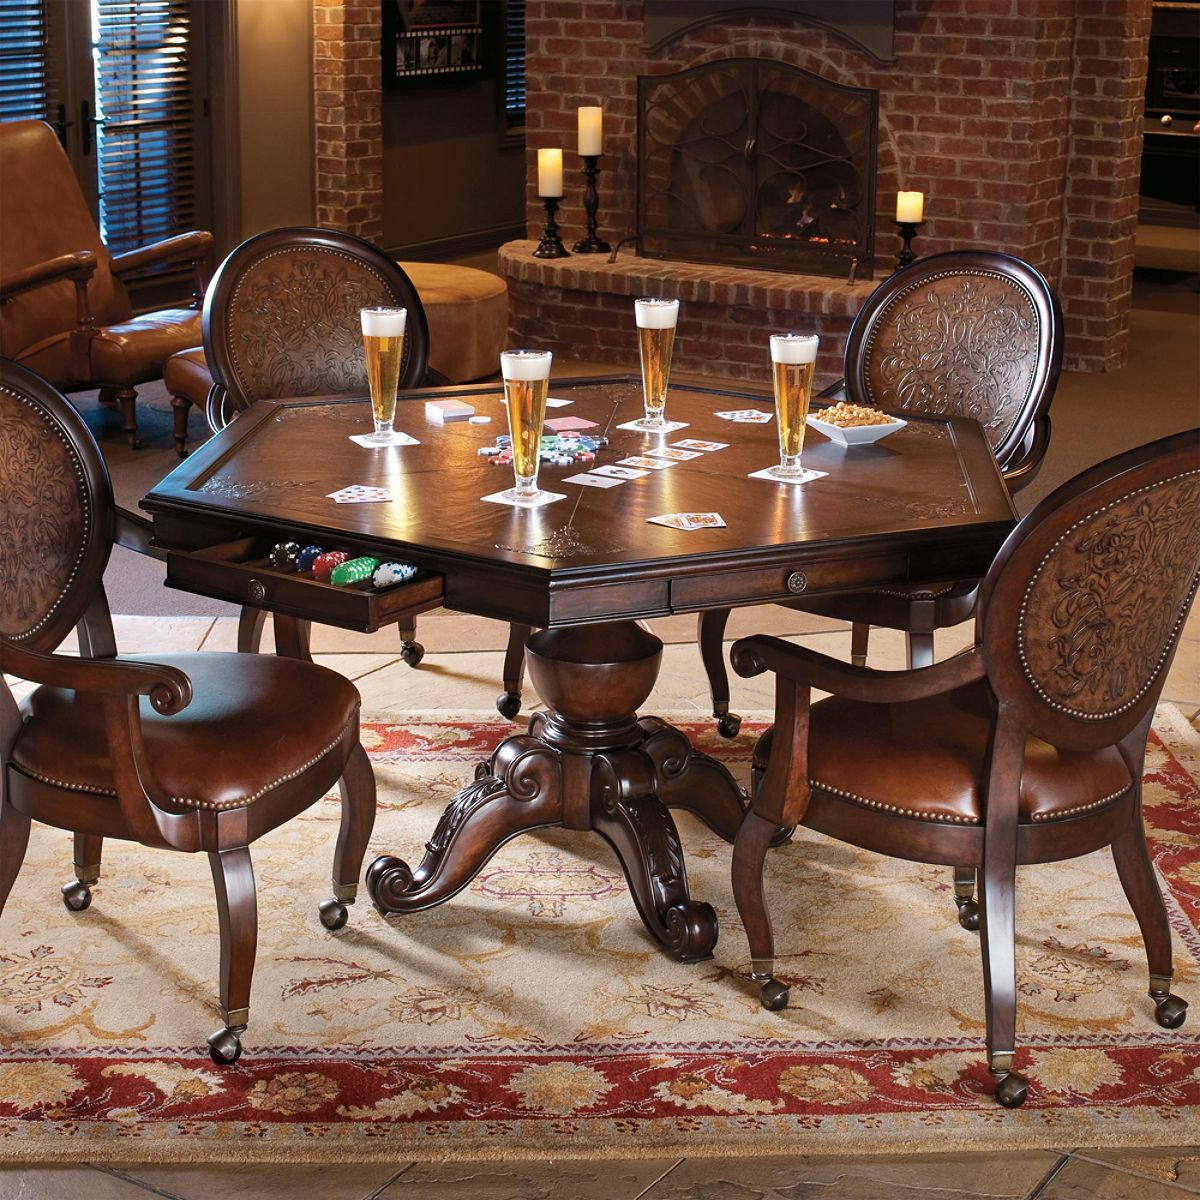 Family Game Time On The Beautiful Austin Game Room Furniture Set By  Frontgate